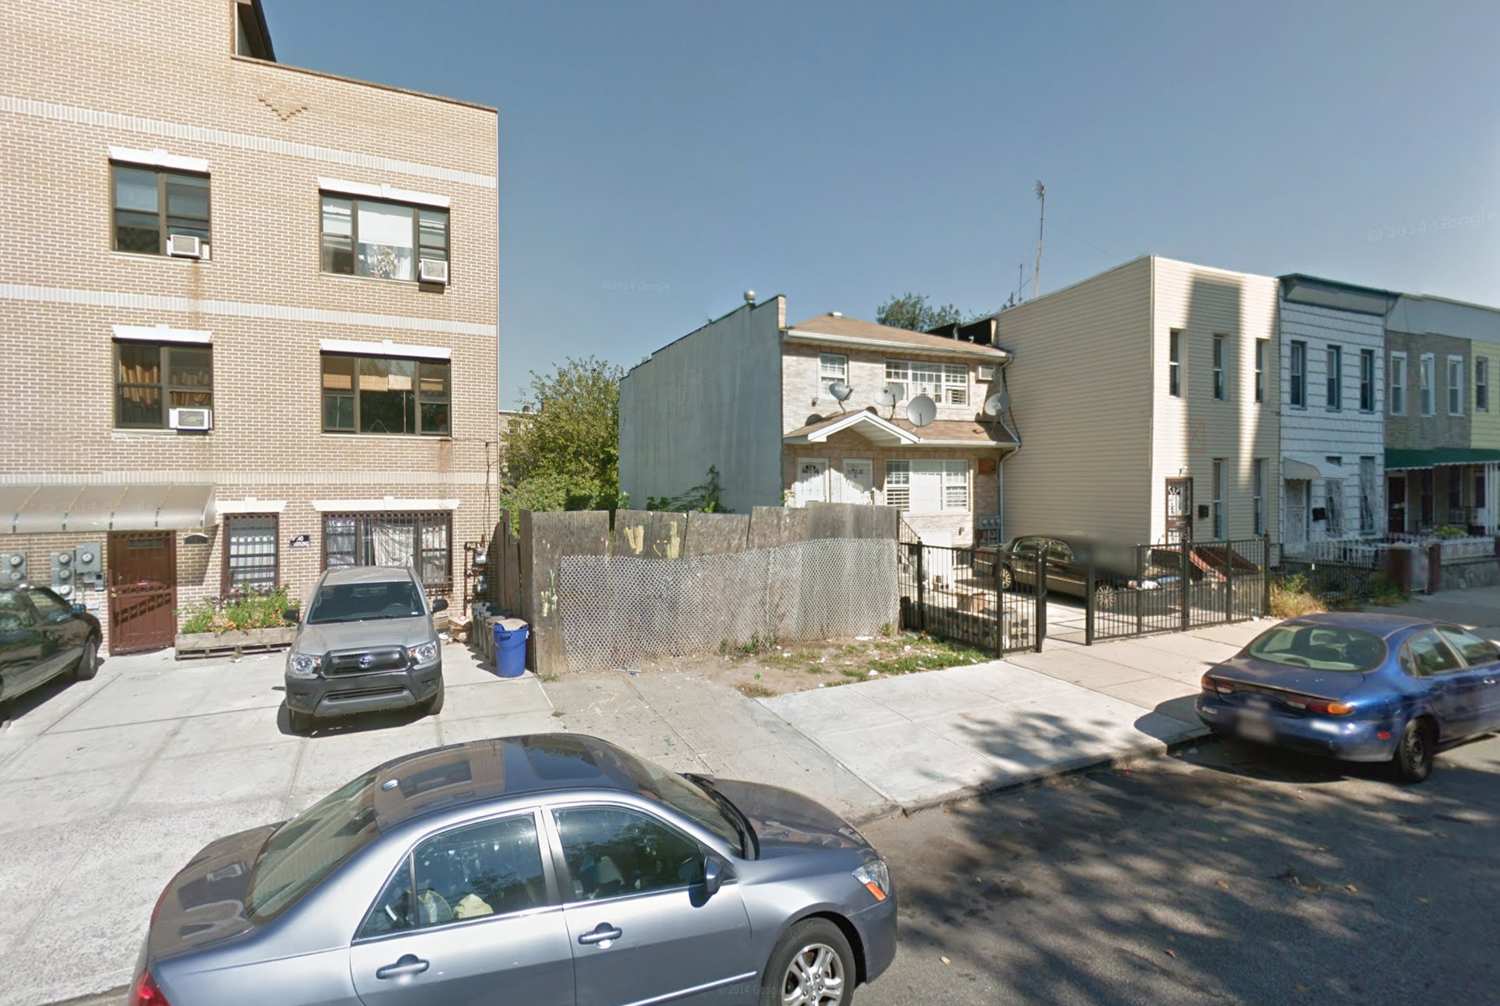 389 Sumpter Street, via Google Maps